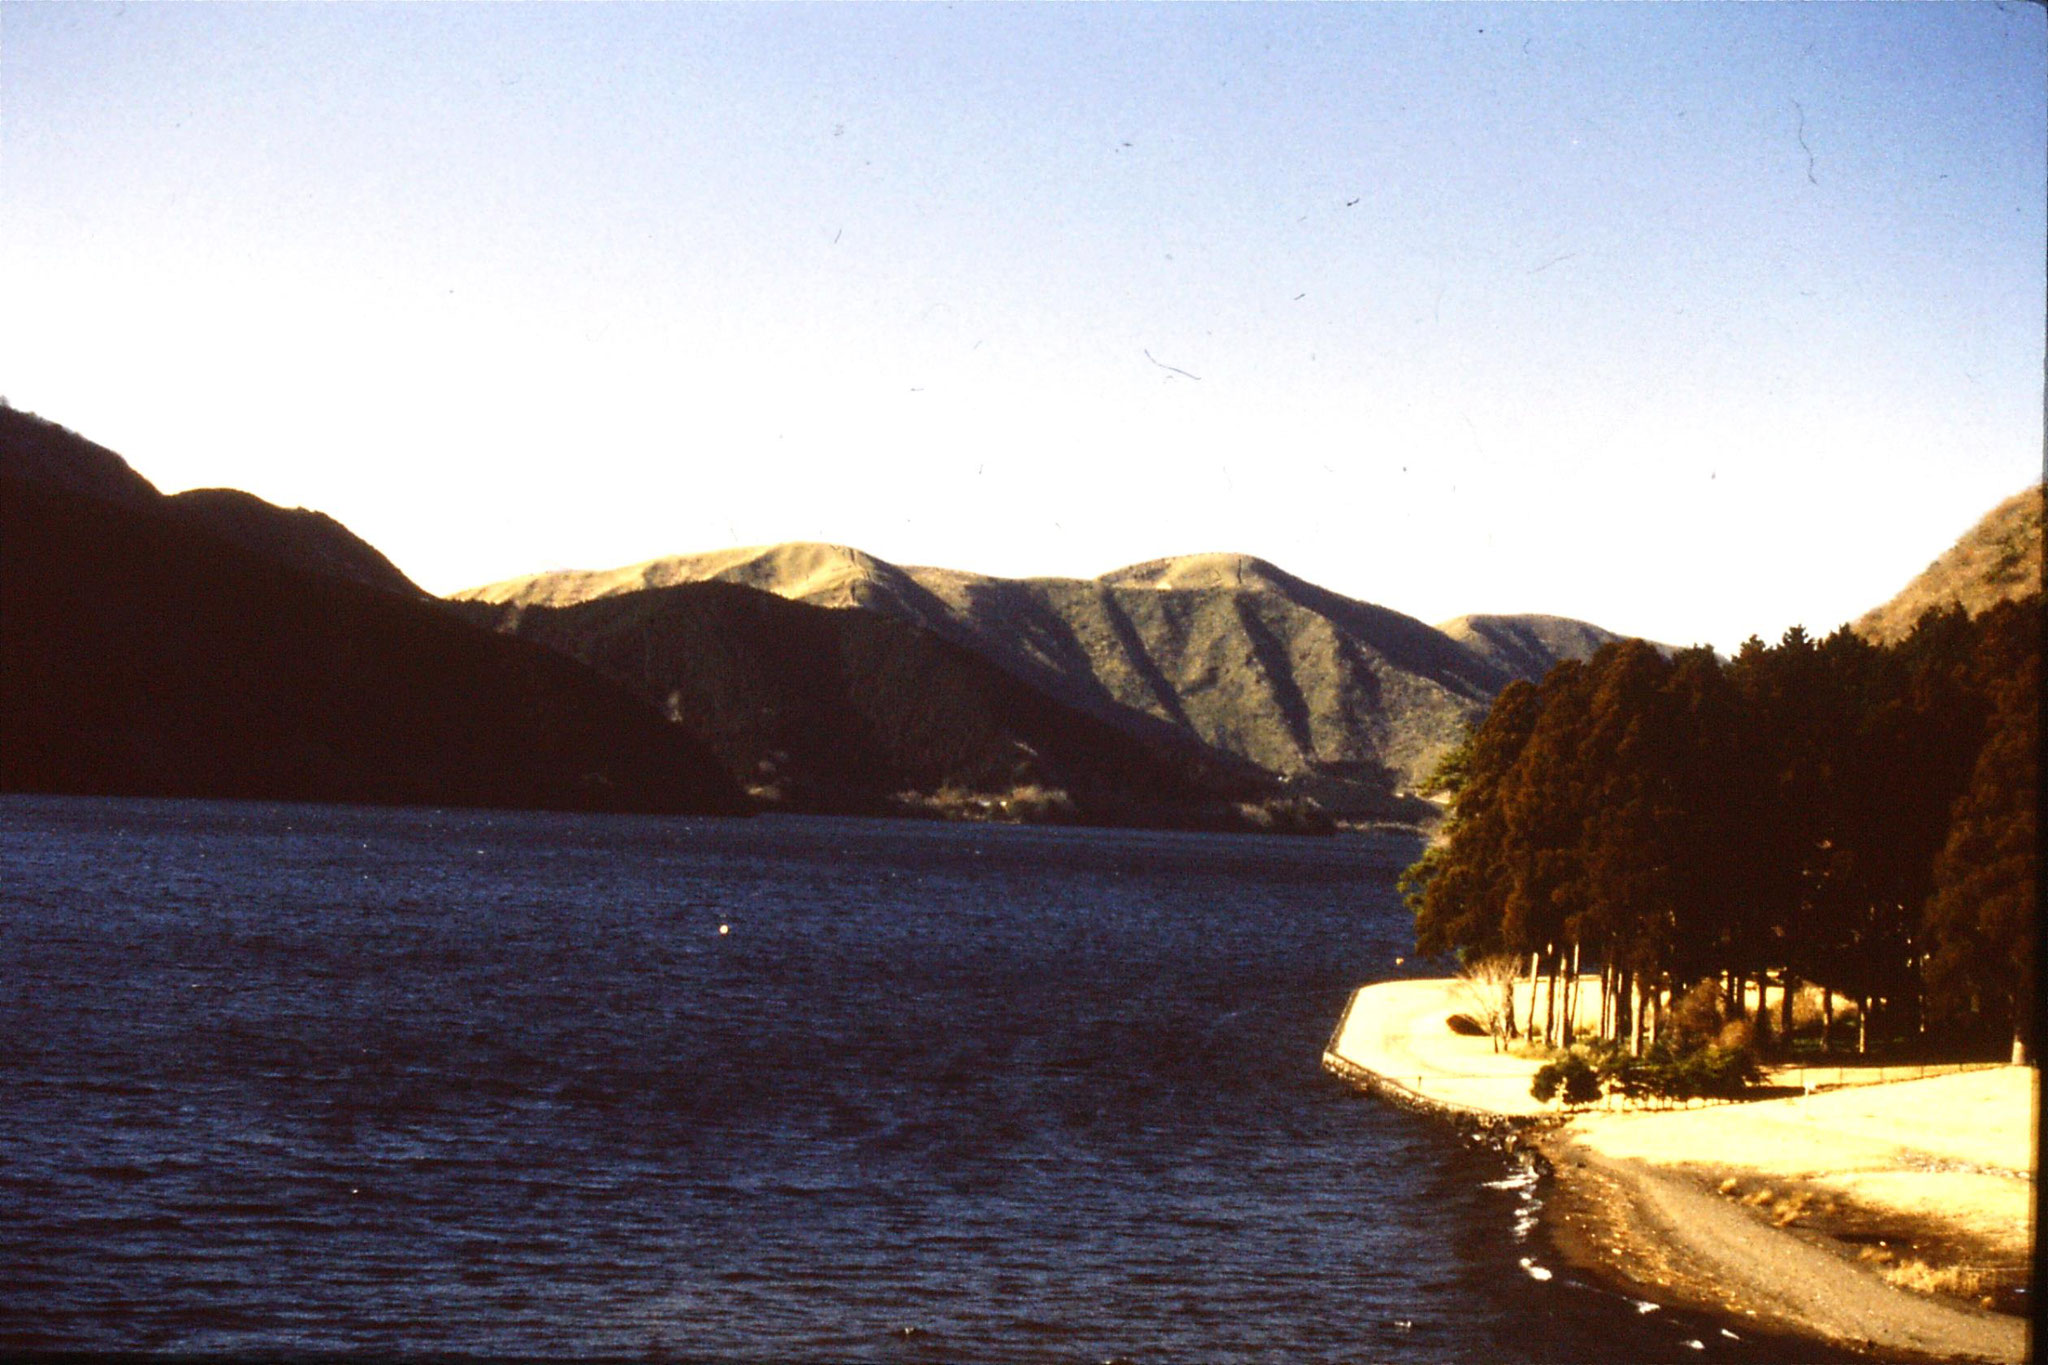 28/1/1989: 30: Lake Hakone